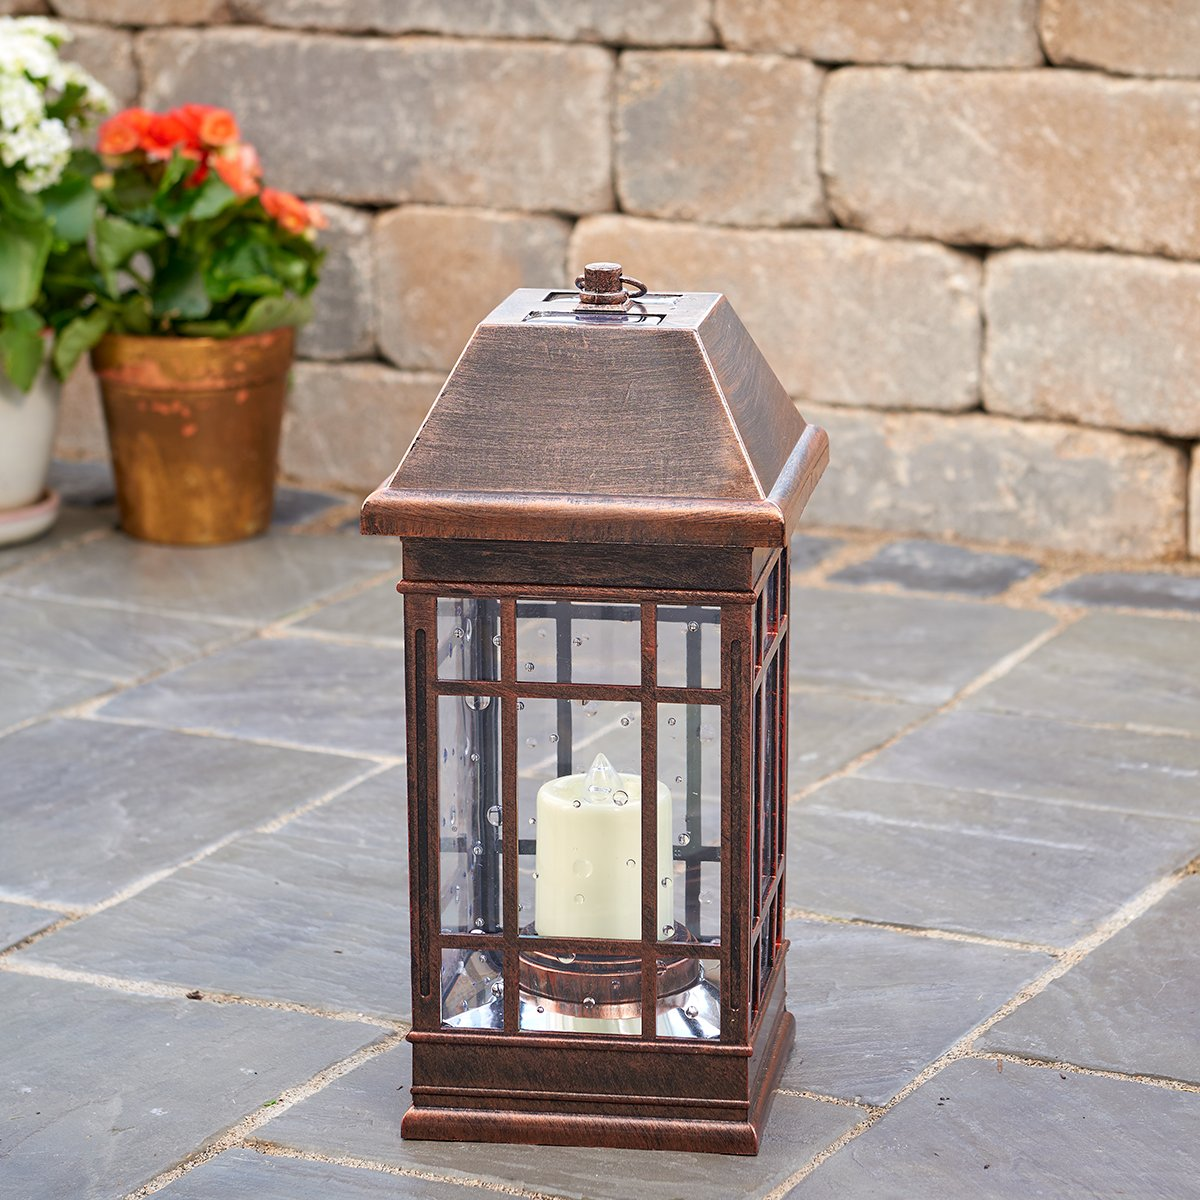 Amazon.com : Smart Solar 3960KR1 San Rafael II Solar Mission Lantern  Illuminated By 2 High Performance Warm White LEDs In The Top And One Amber  LED In The ...